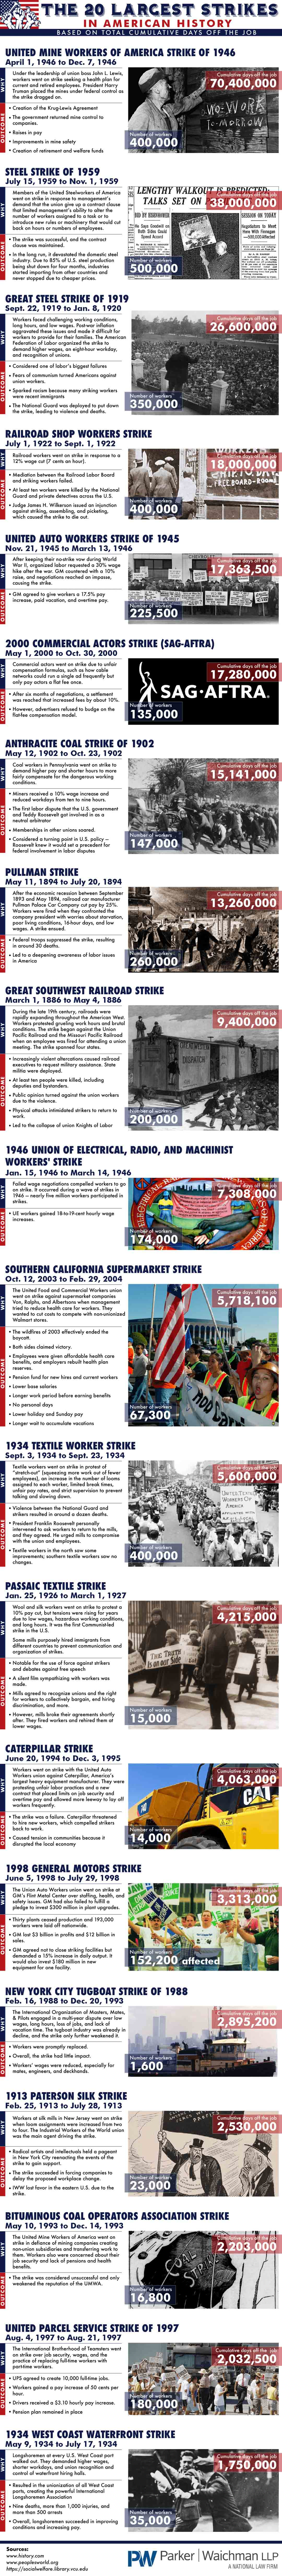 The 20 Largest Strikes in American History